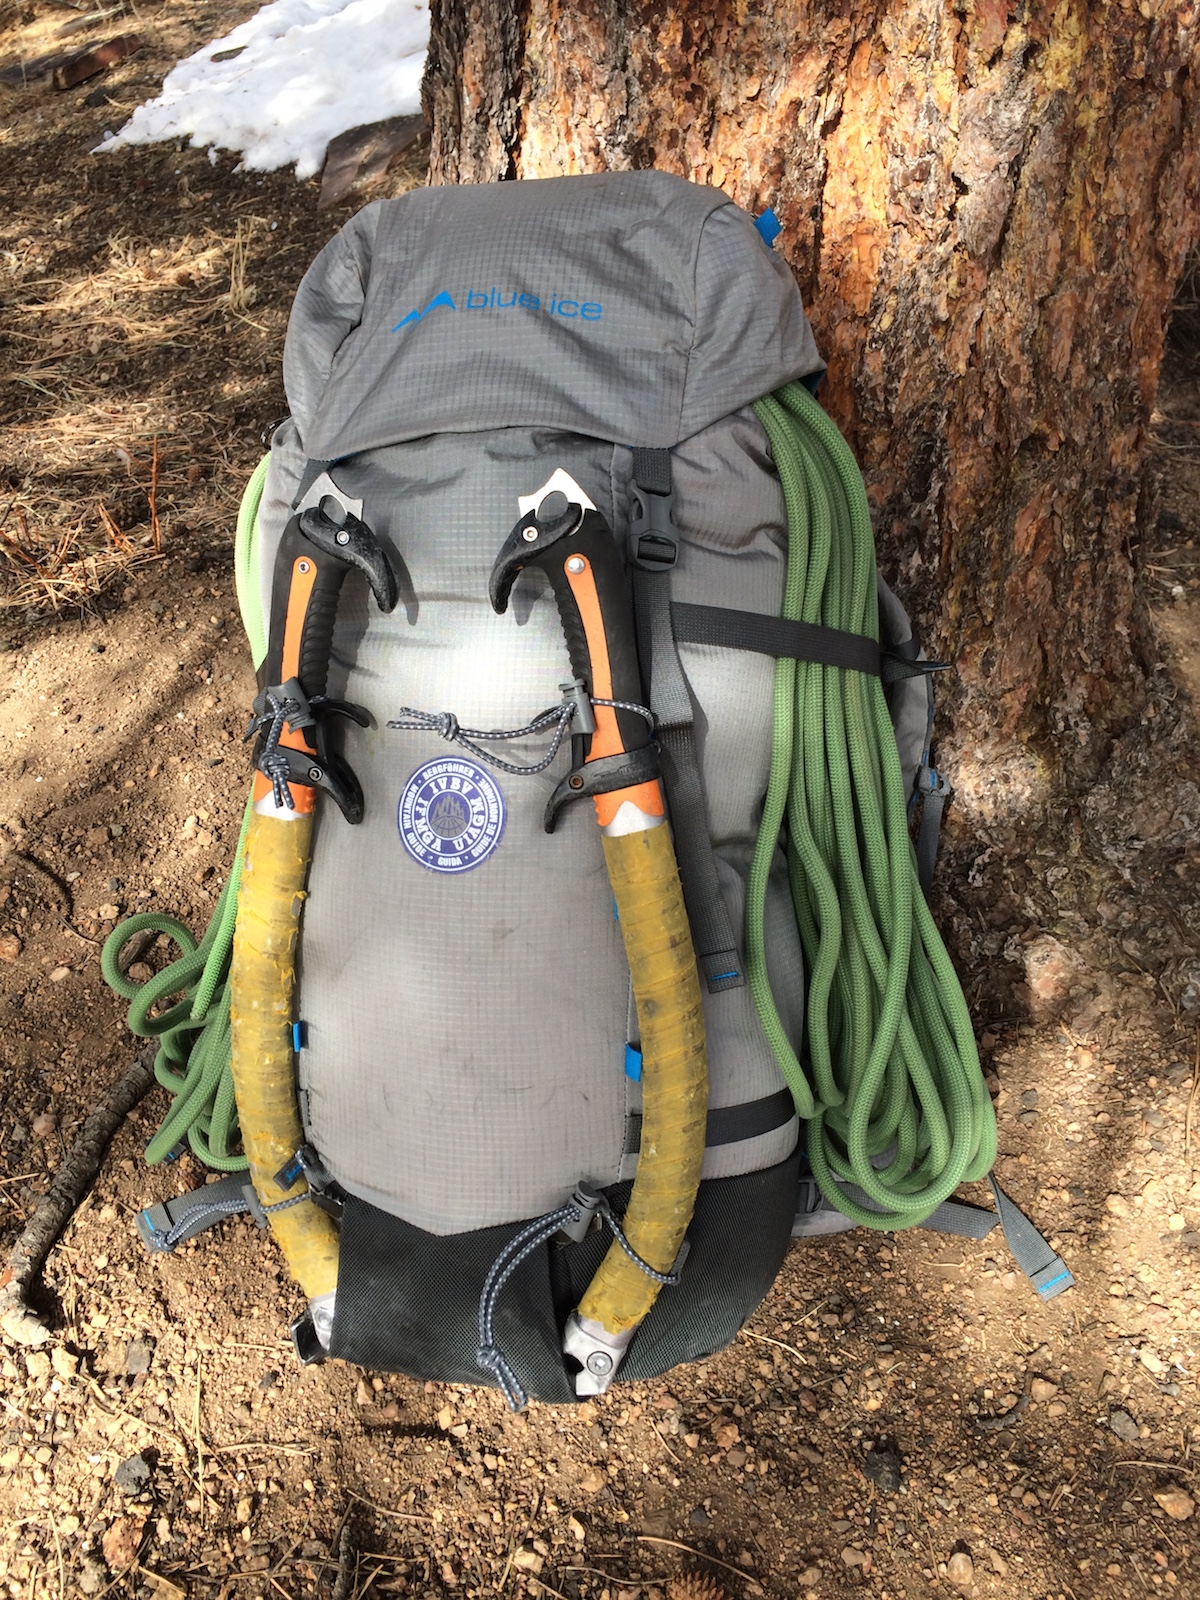 The Yeti 50L pack shown carrying two ice tools and a rope. The ice tools are held by bungee cords with plastic toggles. [Photo] Mike Lewis